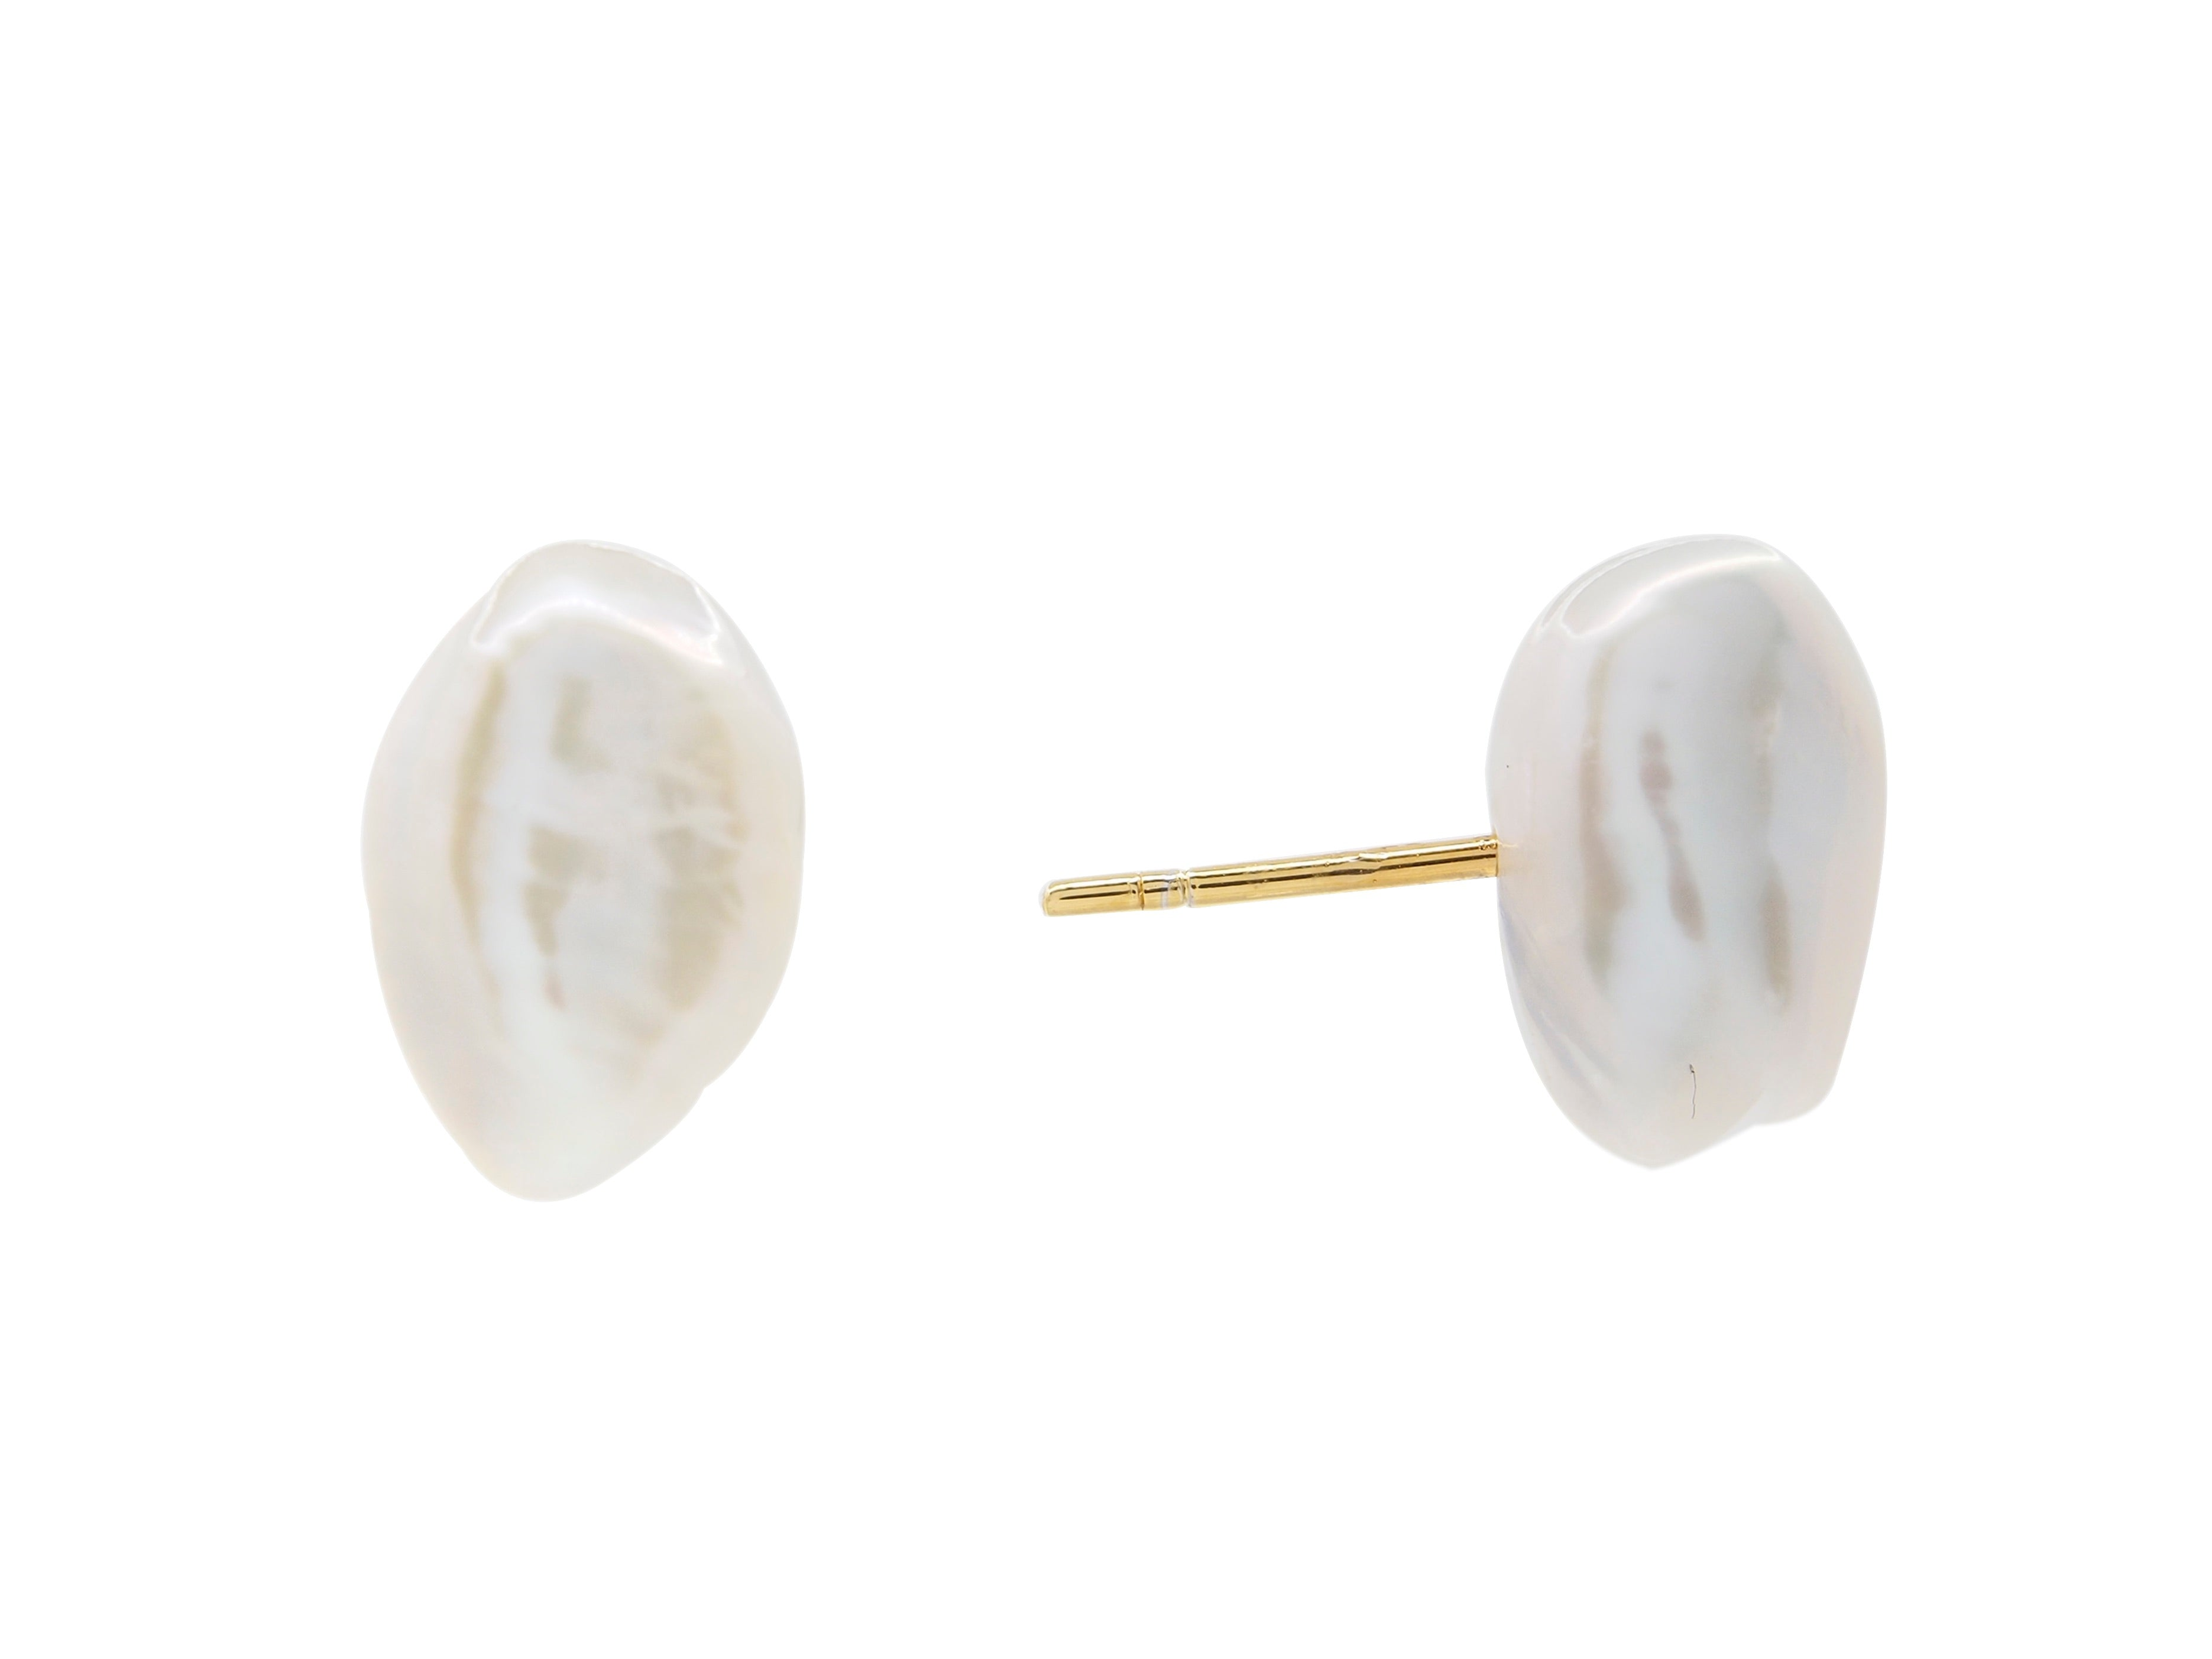 Cable beach baroque pearl stud earrings, sterling silver, yellow gold plated